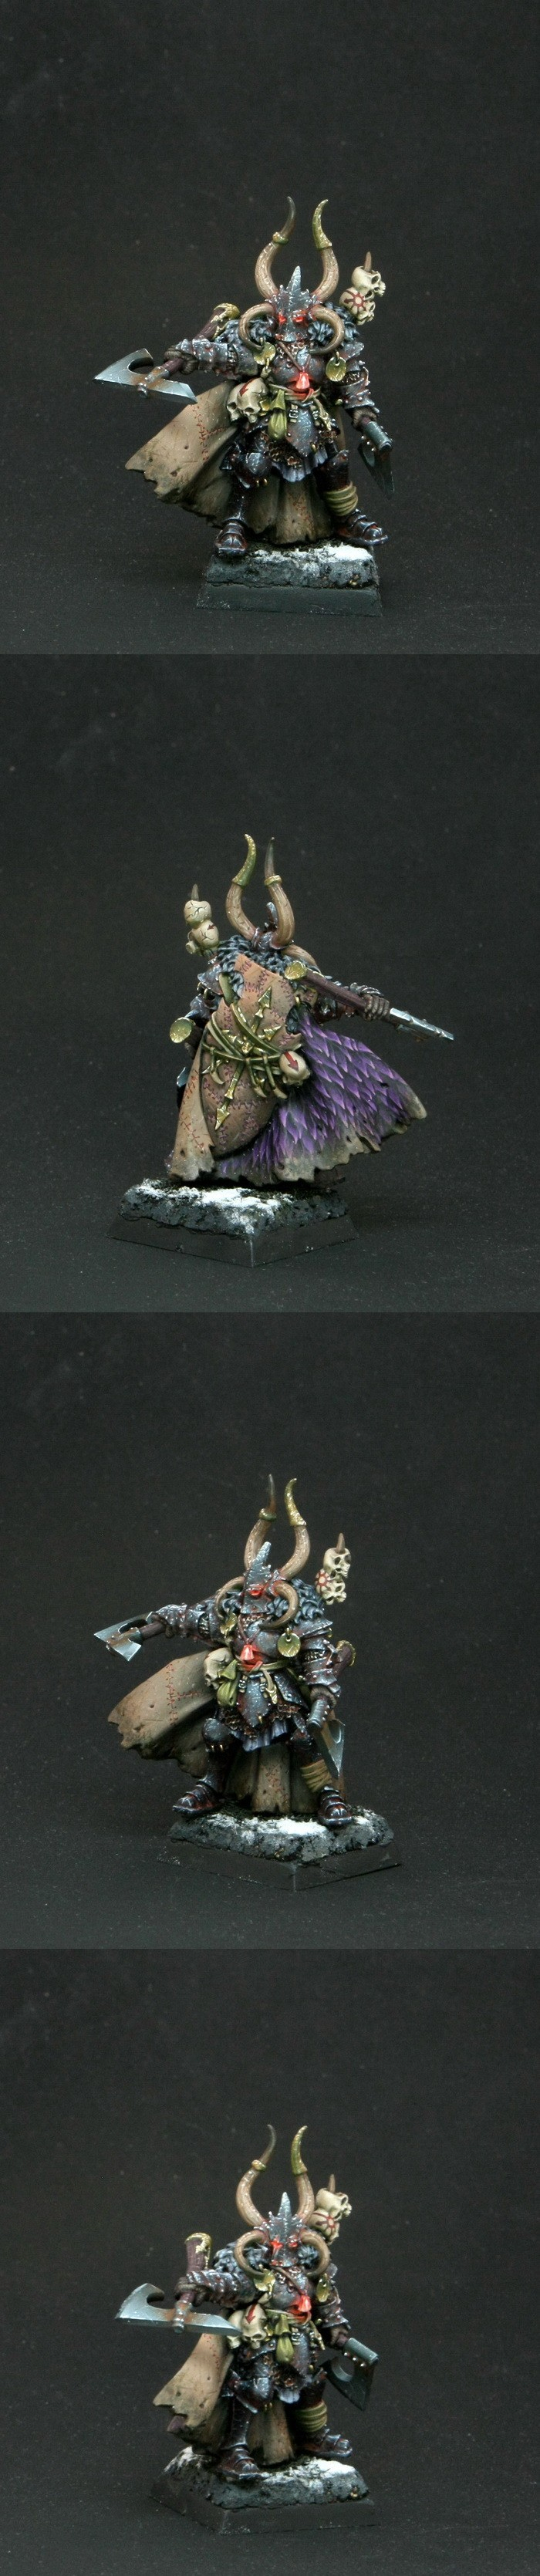 Chaos lord (GD 2009)